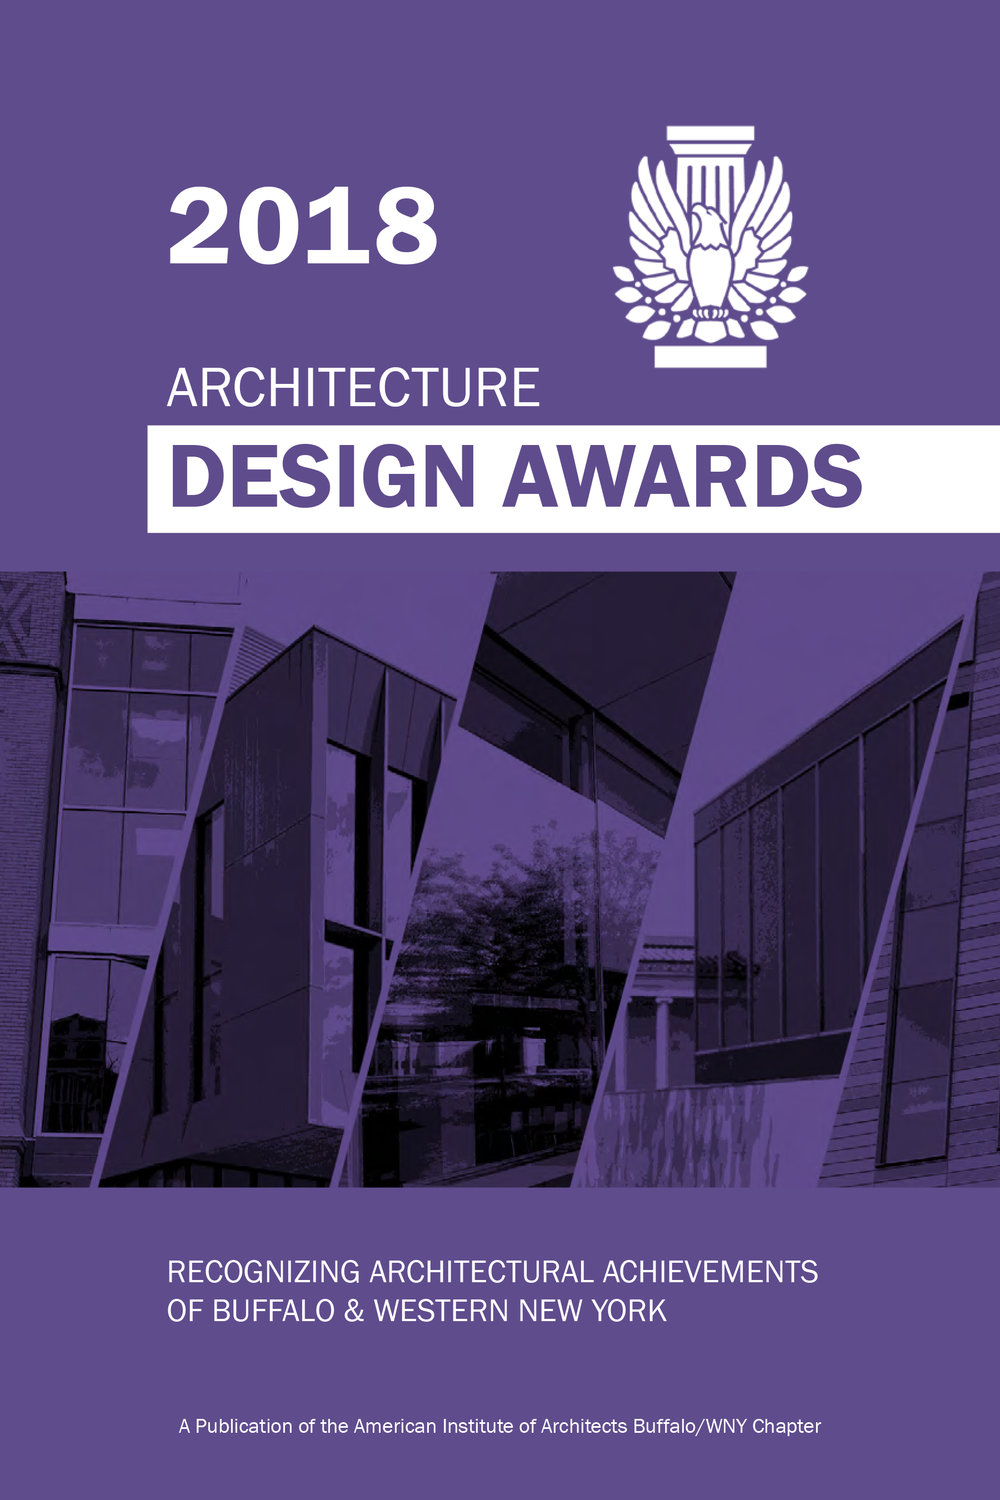 2018 Design Awards cover.jpg